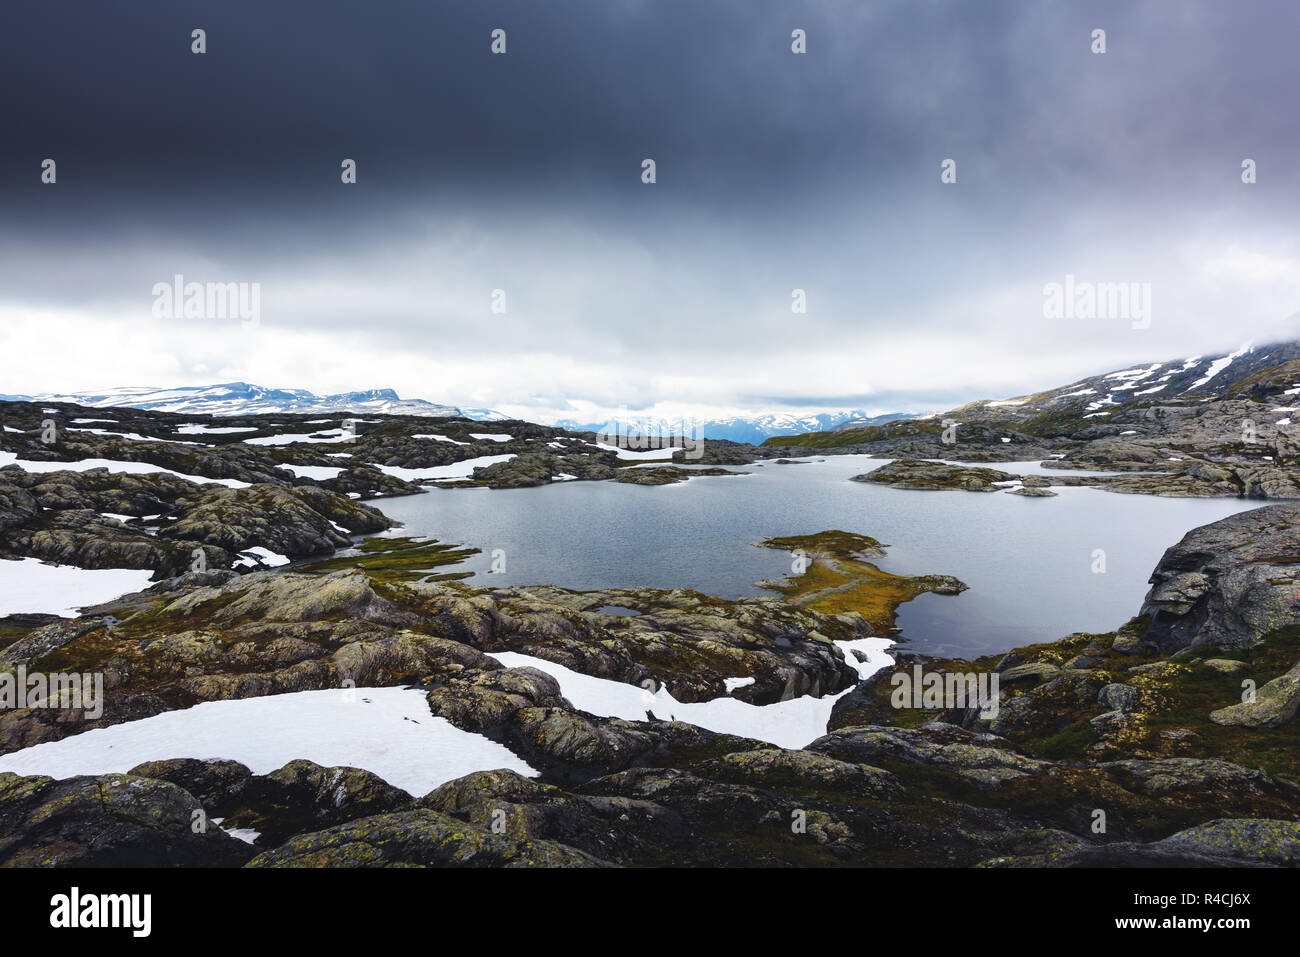 Typical norwegian landscape with snowy mountains and clear lake near the Trolltunga rock - most spectacular and famous scenic cliff in Norway - Stock Image